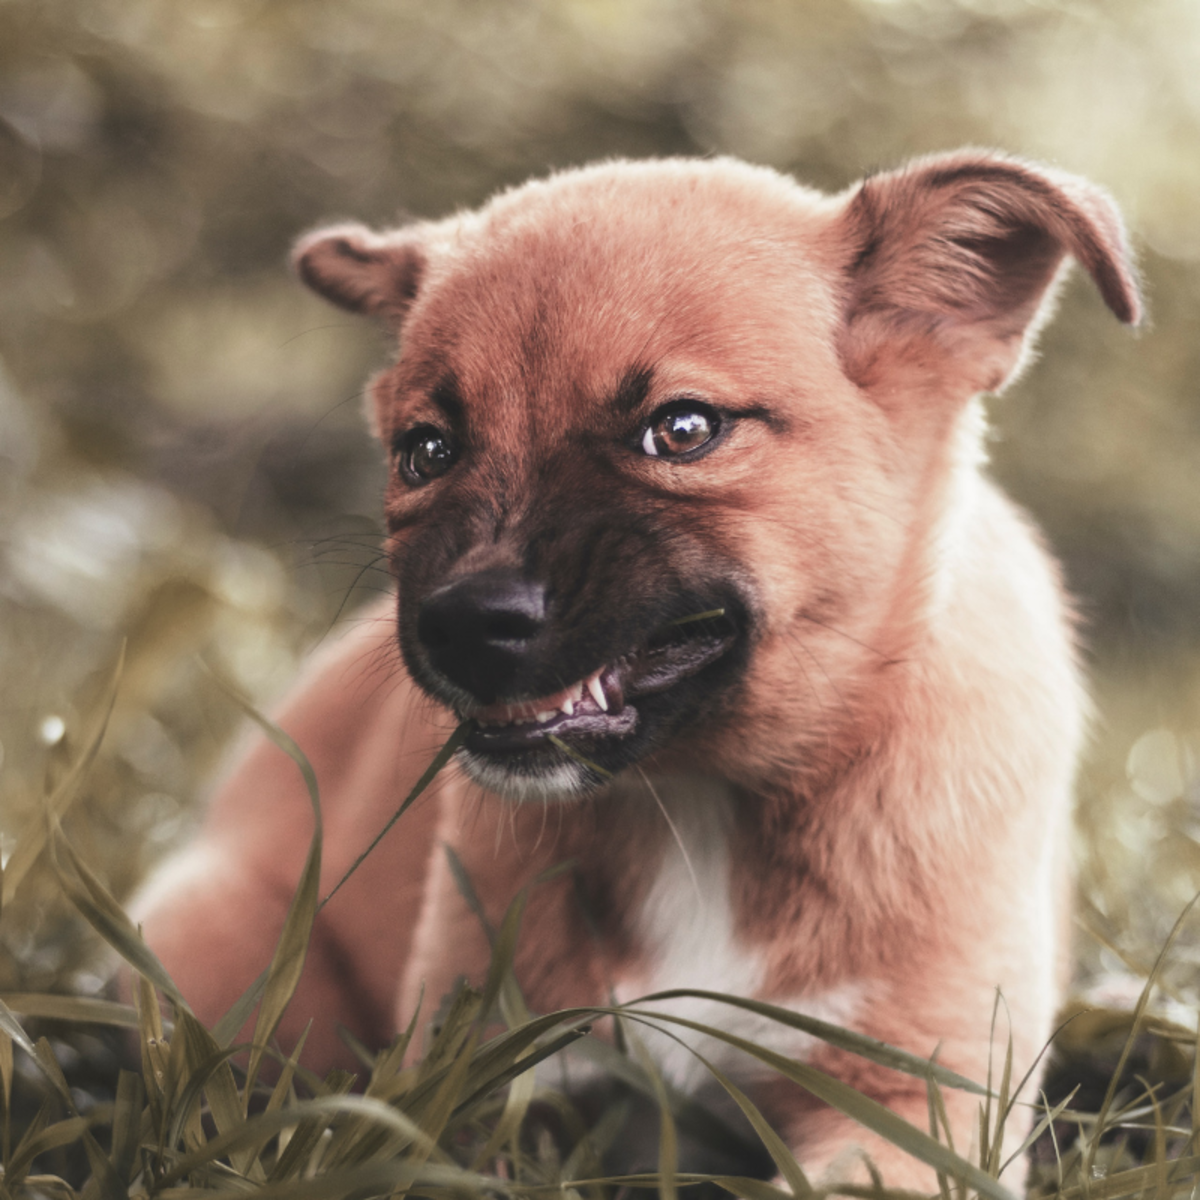 Be sure to take your pup to the vet once their permanent teeth come in to check on their dental health.